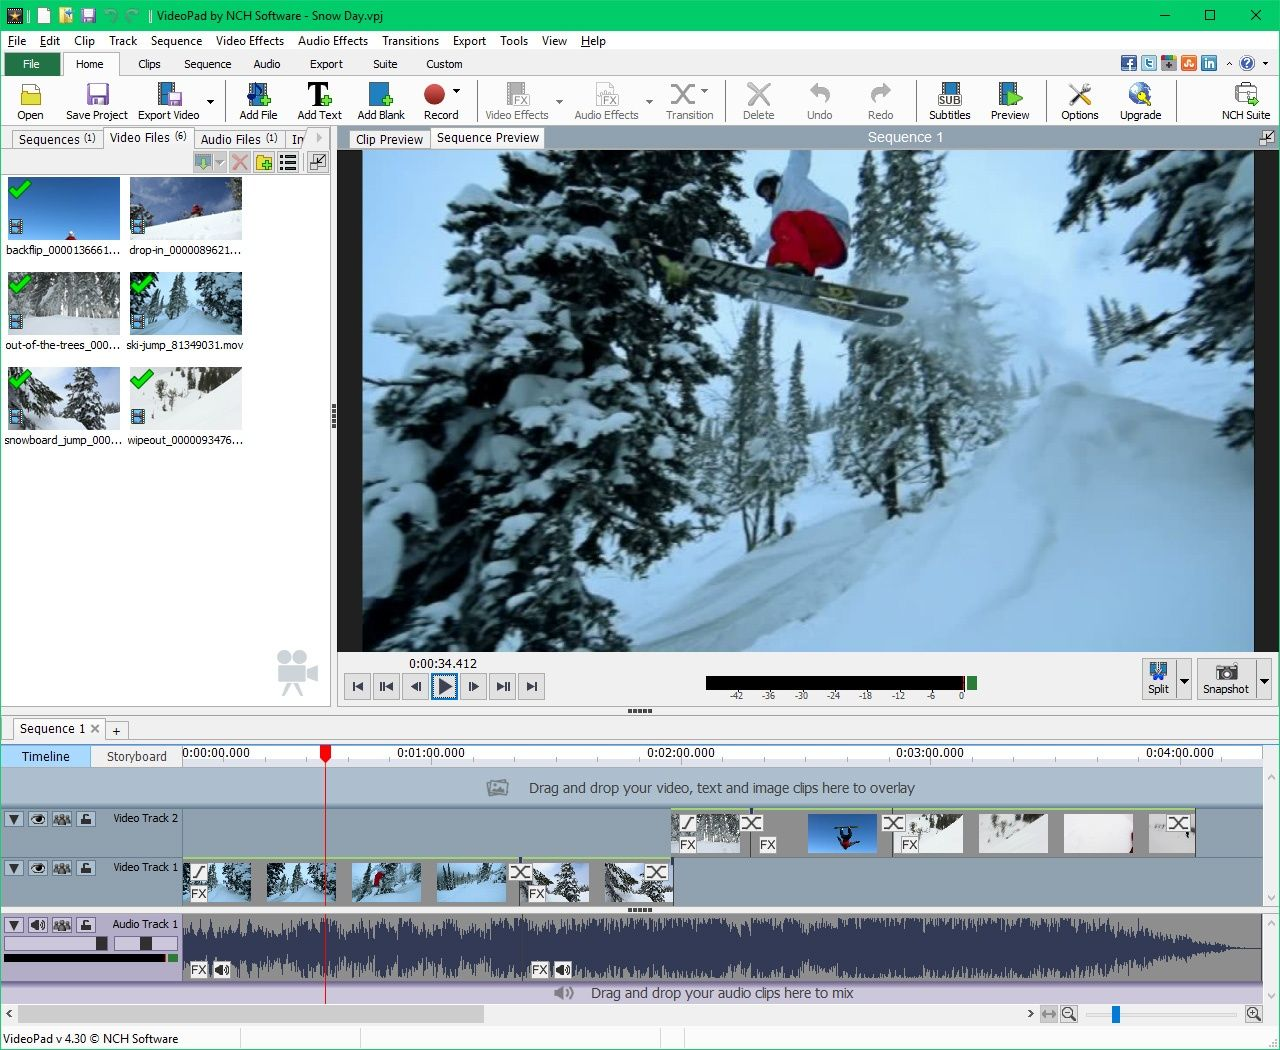 nch videopad video editor professional 5.11 crack - registration code download